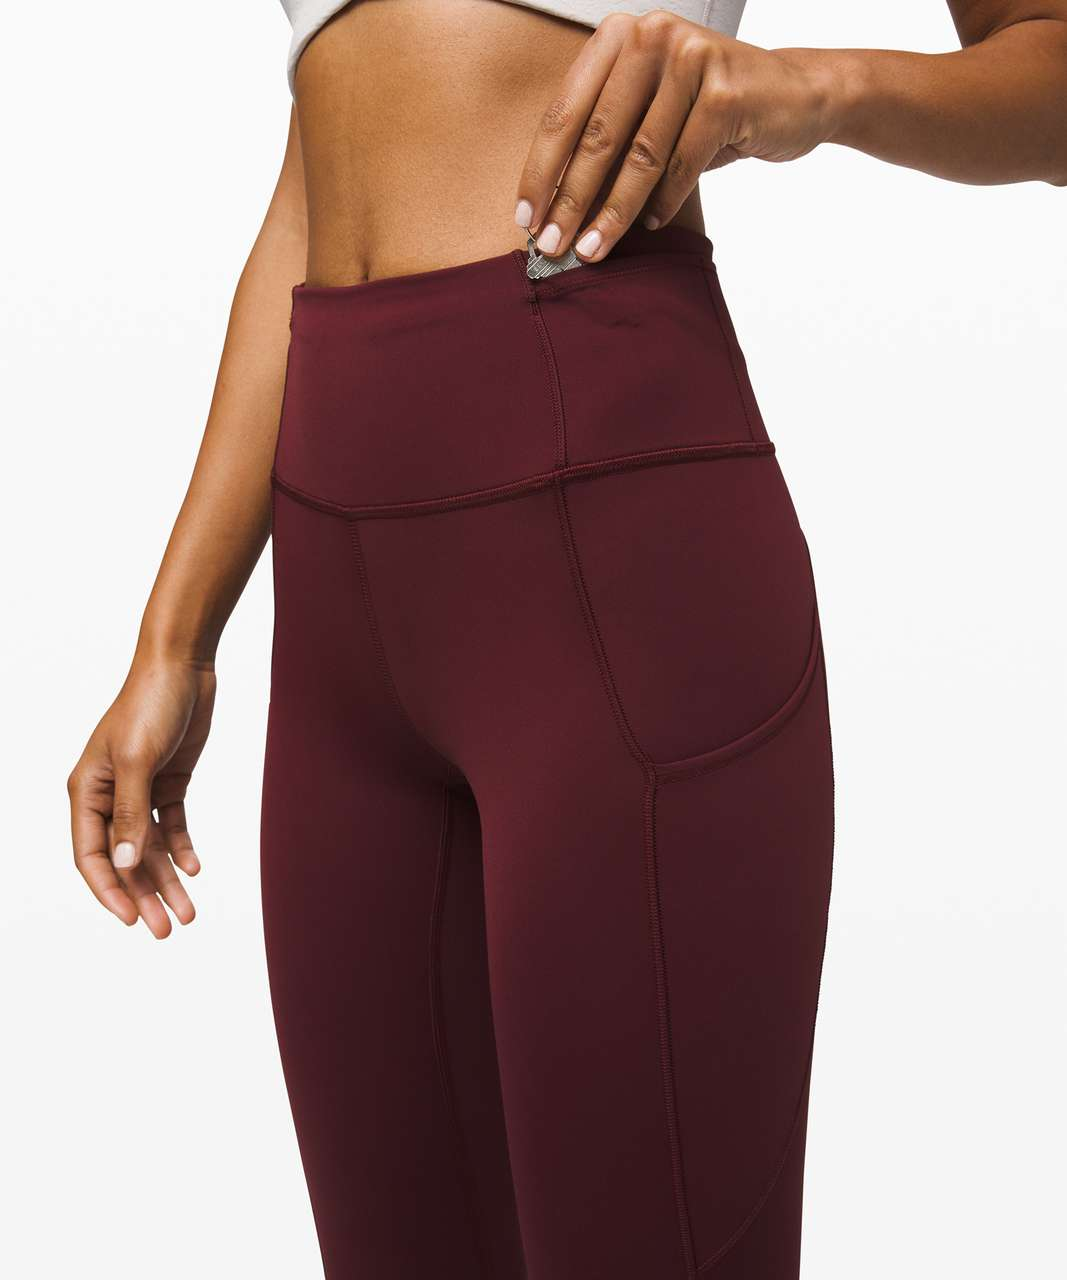 Lululemon Fast and Free High-Rise Crop II *Non-Reflective Nulux - Garnet